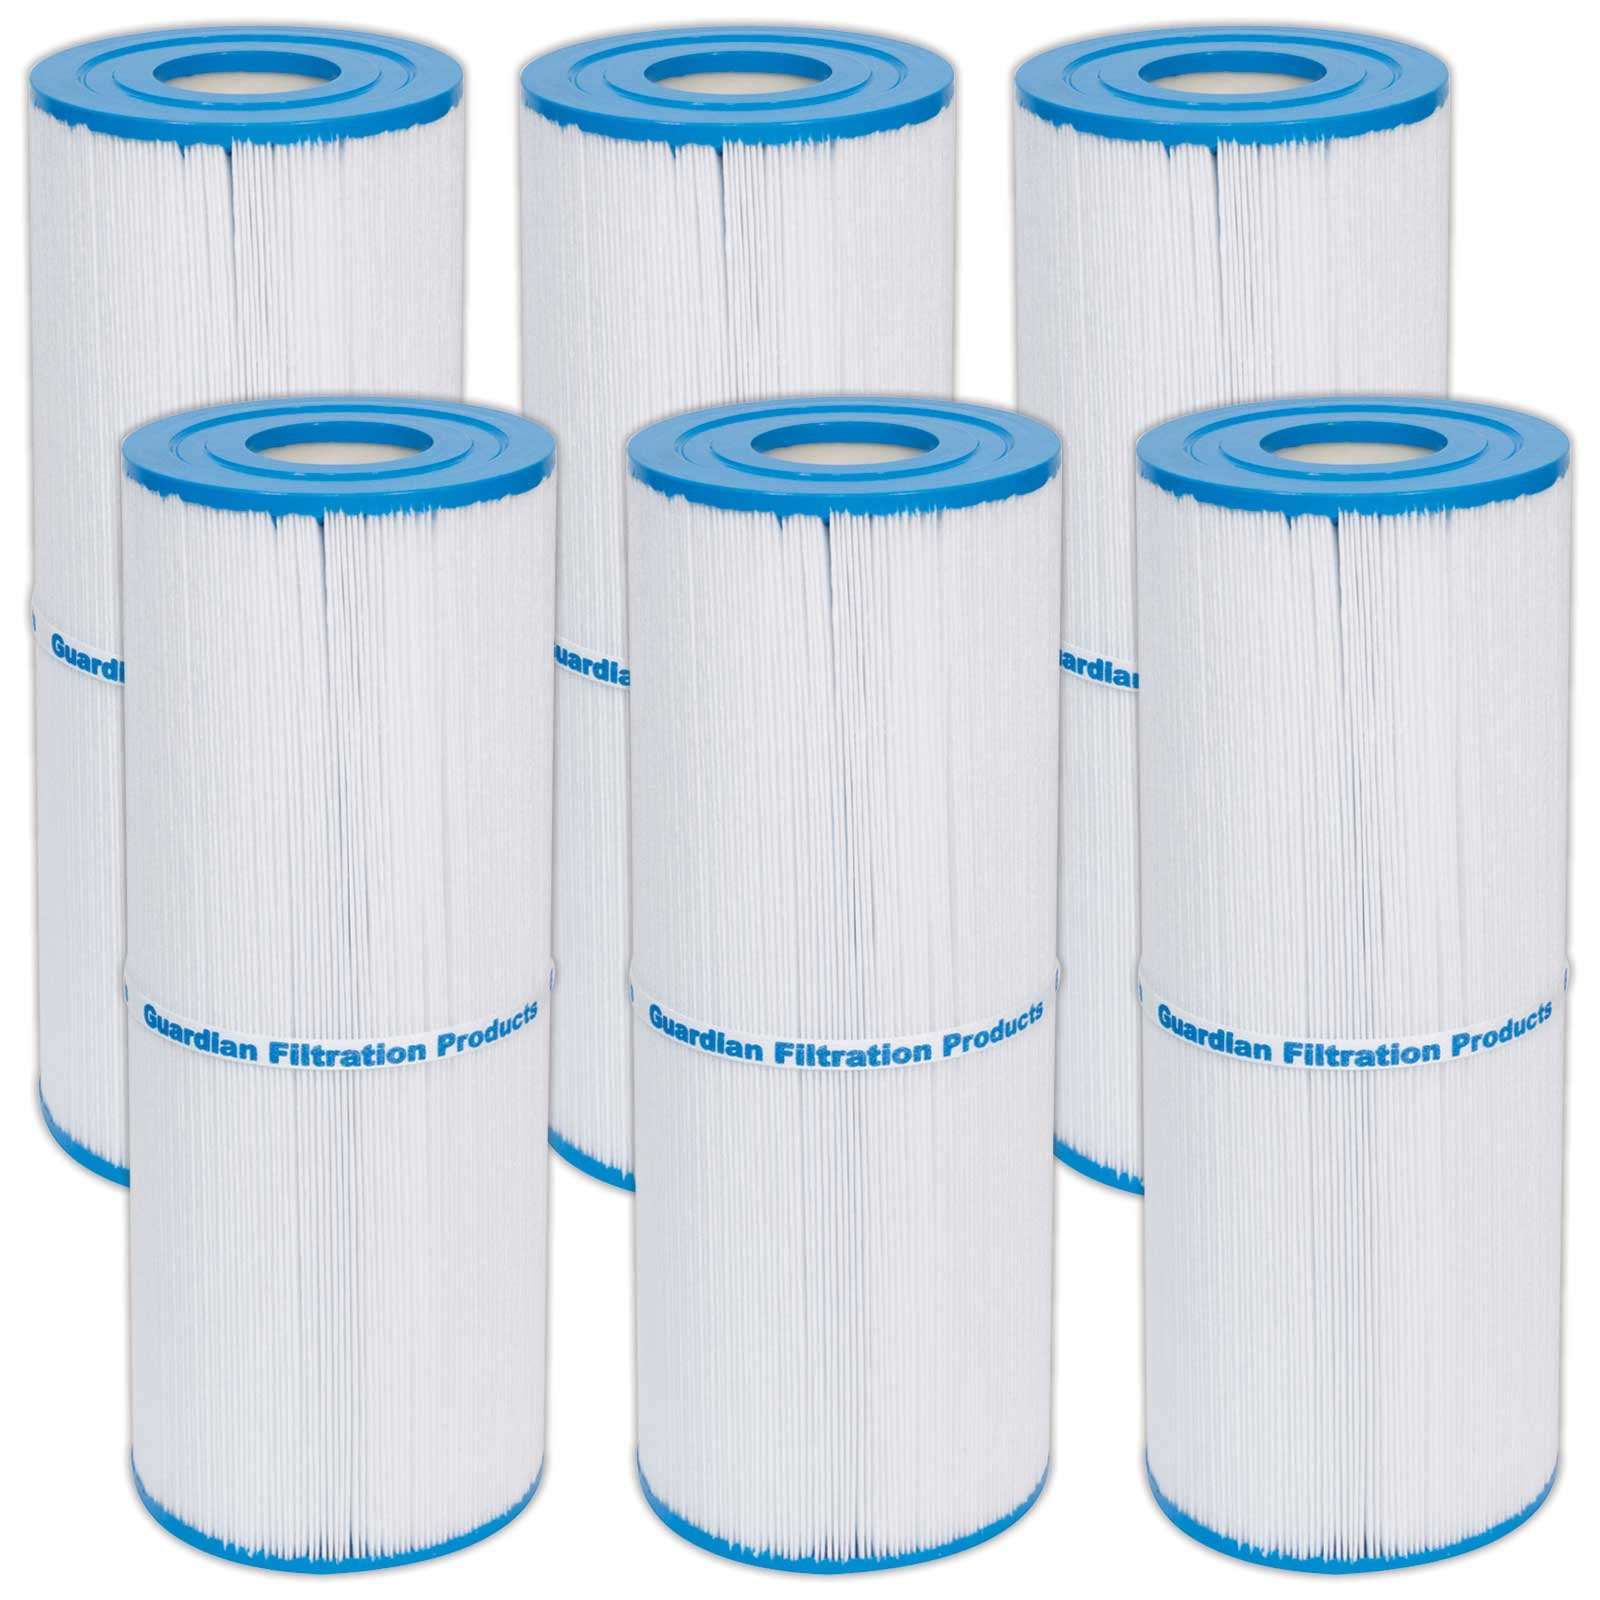 6) New Guardian Spa filters Replace: Unicel C-4950 Prb50-in Jacuzzi Cartridge by Guardian Filtration Products